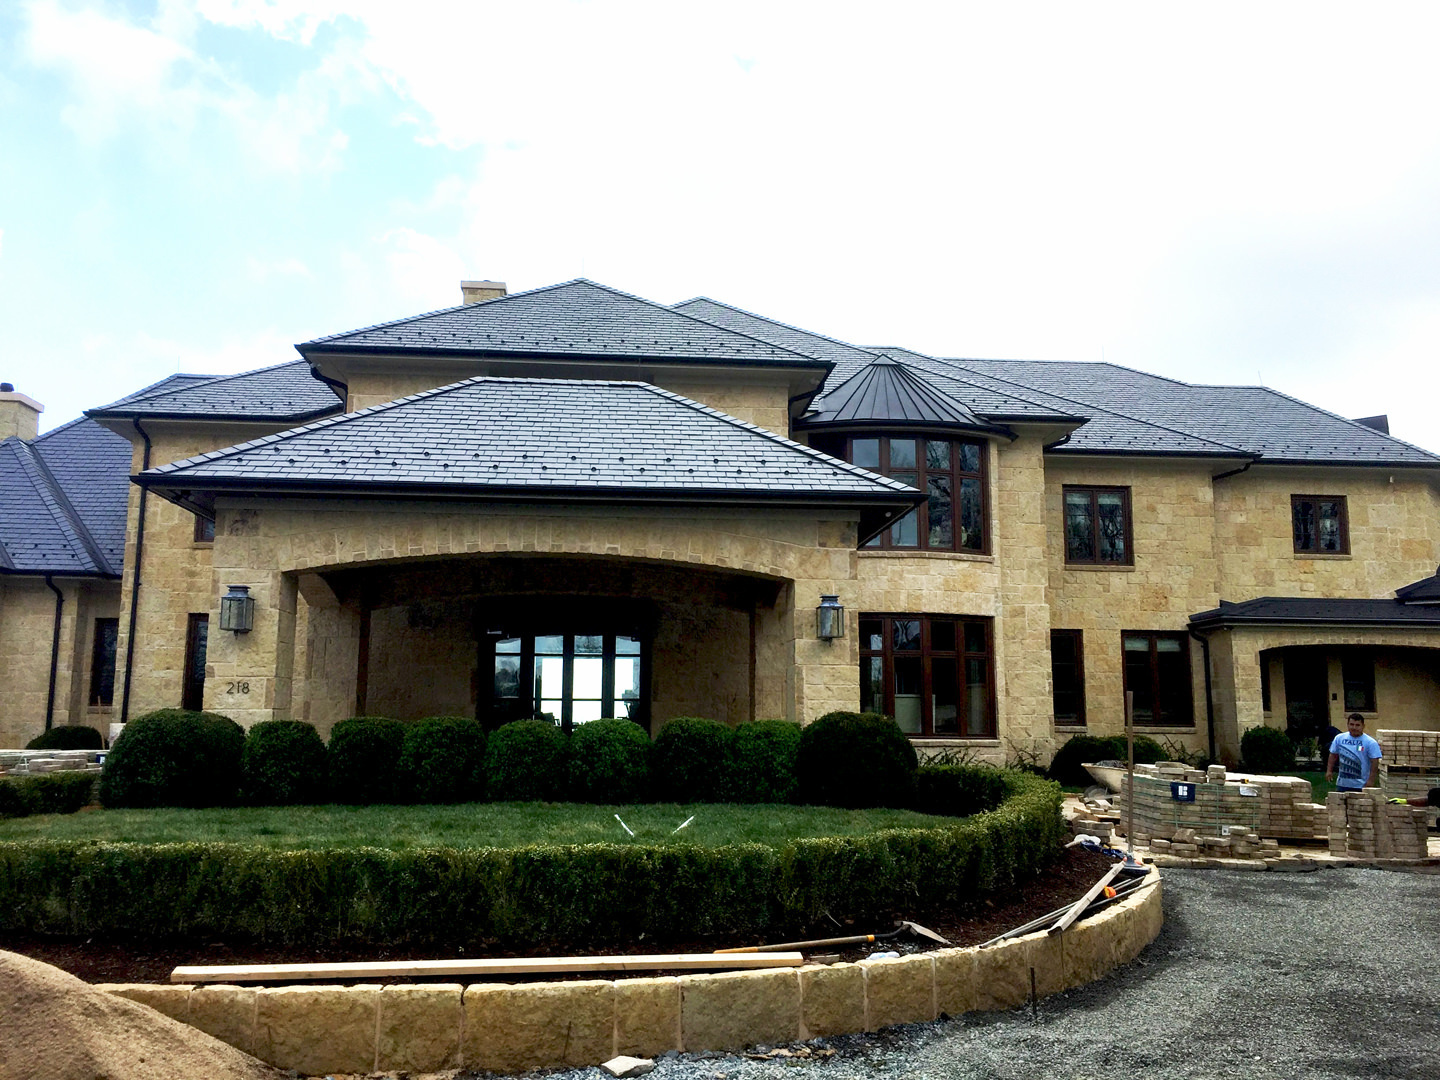 Unfading Spanish black slate roof with black zinc flashings and gutters